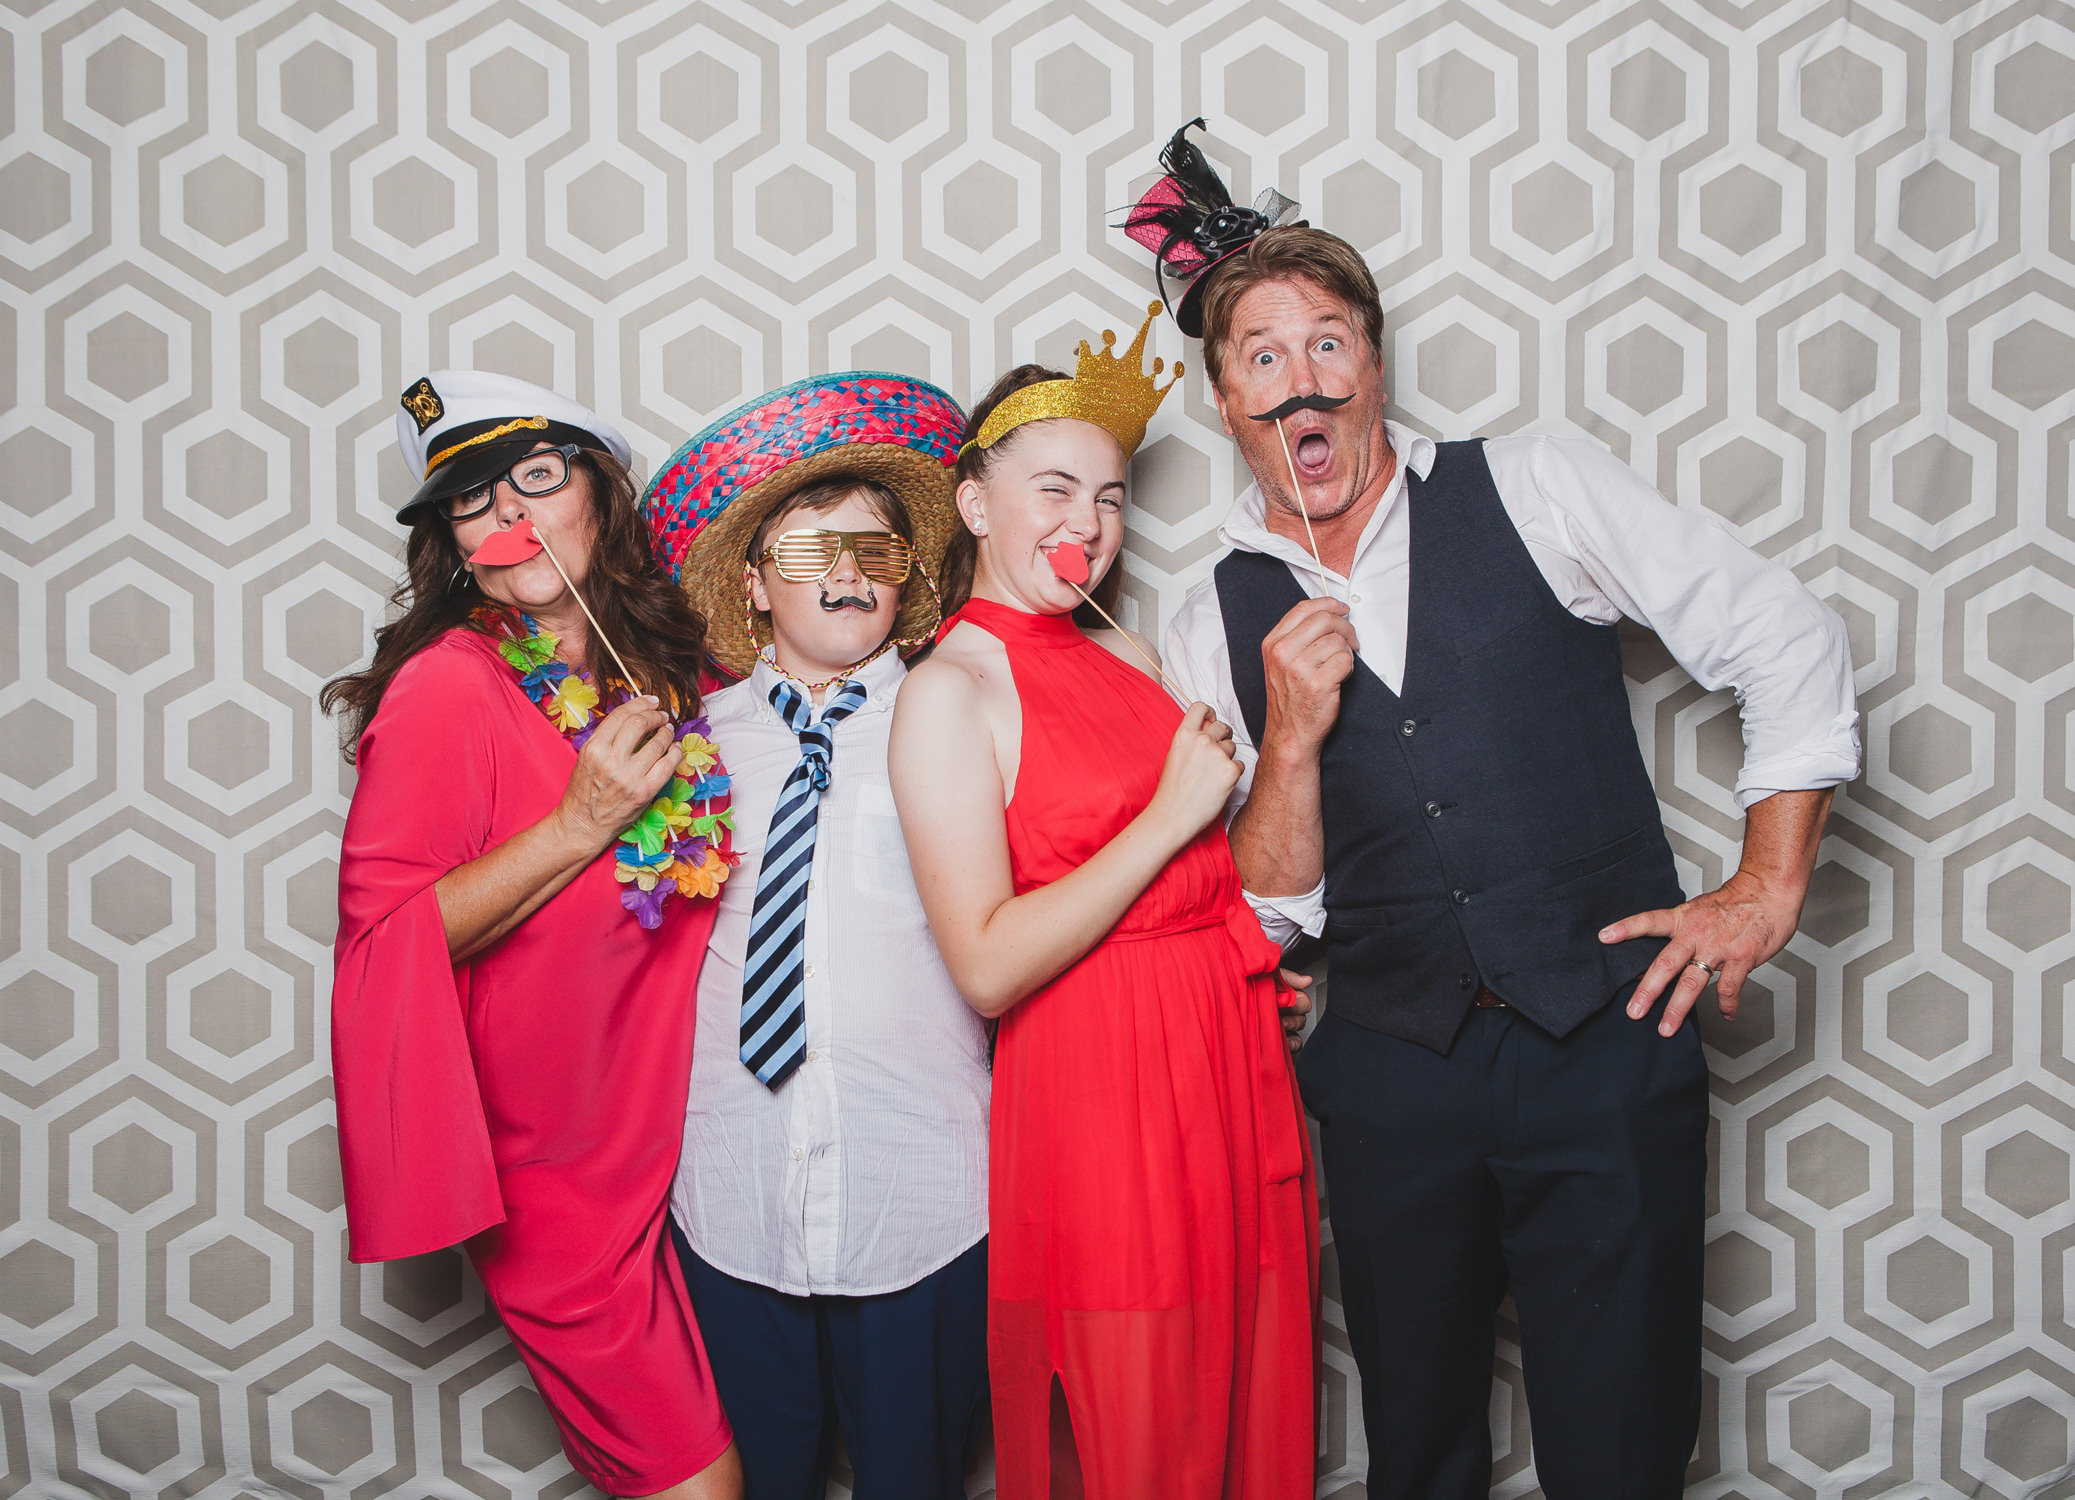 family fun in squamish photobooth portrait station